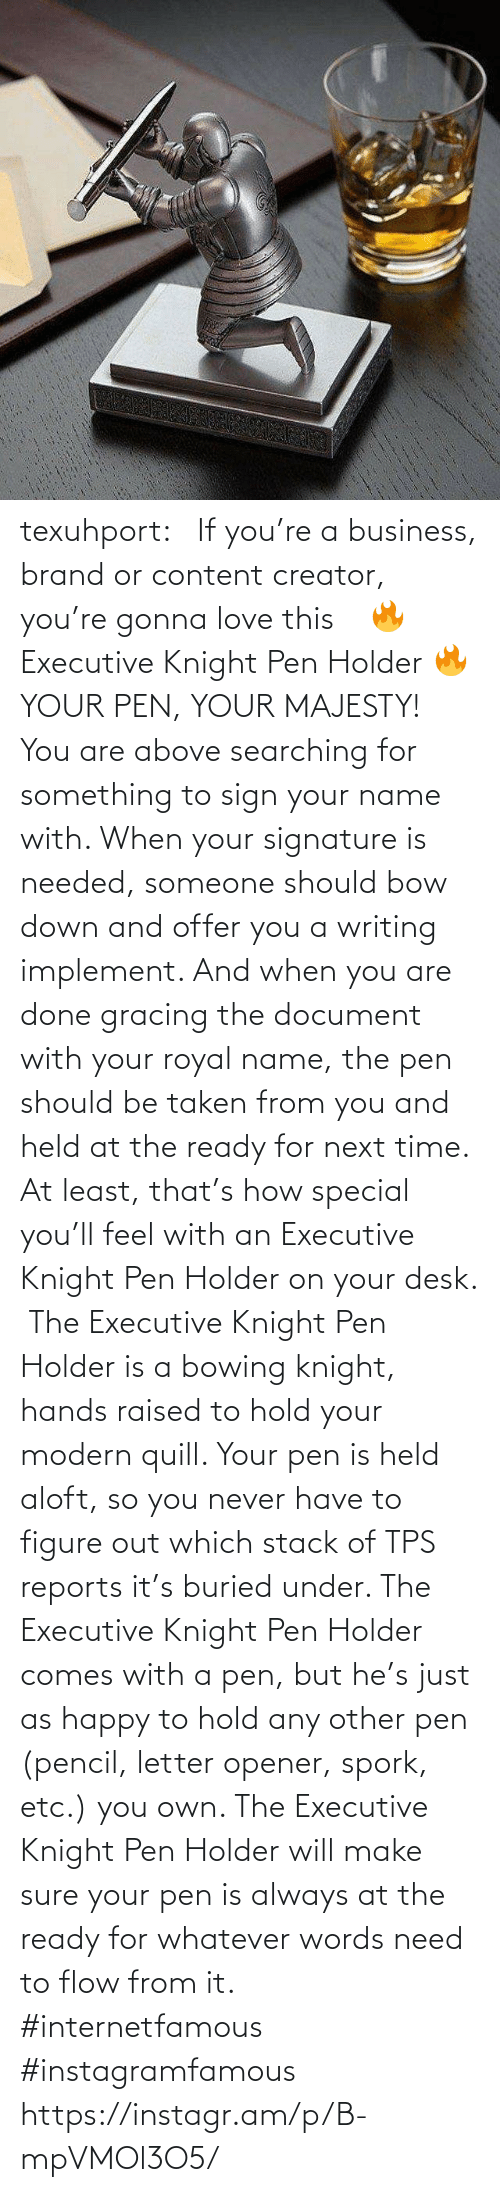 buried: texuhport:⎆ If you're a business, brand or content creator, you're gonna love this ⎆⁣ 🔥 Executive Knight Pen Holder 🔥⁣ YOUR PEN, YOUR MAJESTY!⁣ ⁣ You are above searching for something to sign your name with. When your signature is needed, someone should bow down and offer you a writing implement. And when you are done gracing the document with your royal name, the pen should be taken from you and held at the ready for next time. At least, that's how special you'll feel with an Executive Knight Pen Holder on your desk.⁣ ⁣ The Executive Knight Pen Holder is a bowing knight, hands raised to hold your modern quill. Your pen is held aloft, so you never have to figure out which stack of TPS reports it's buried under. The Executive Knight Pen Holder comes with a pen, but he's just as happy to hold any other pen (pencil, letter opener, spork, etc.) you own. The Executive Knight Pen Holder will make sure your pen is always at the ready for whatever words need to flow from it.⁣ #internetfamous  #instagramfamous https://instagr.am/p/B-mpVMOl3O5/